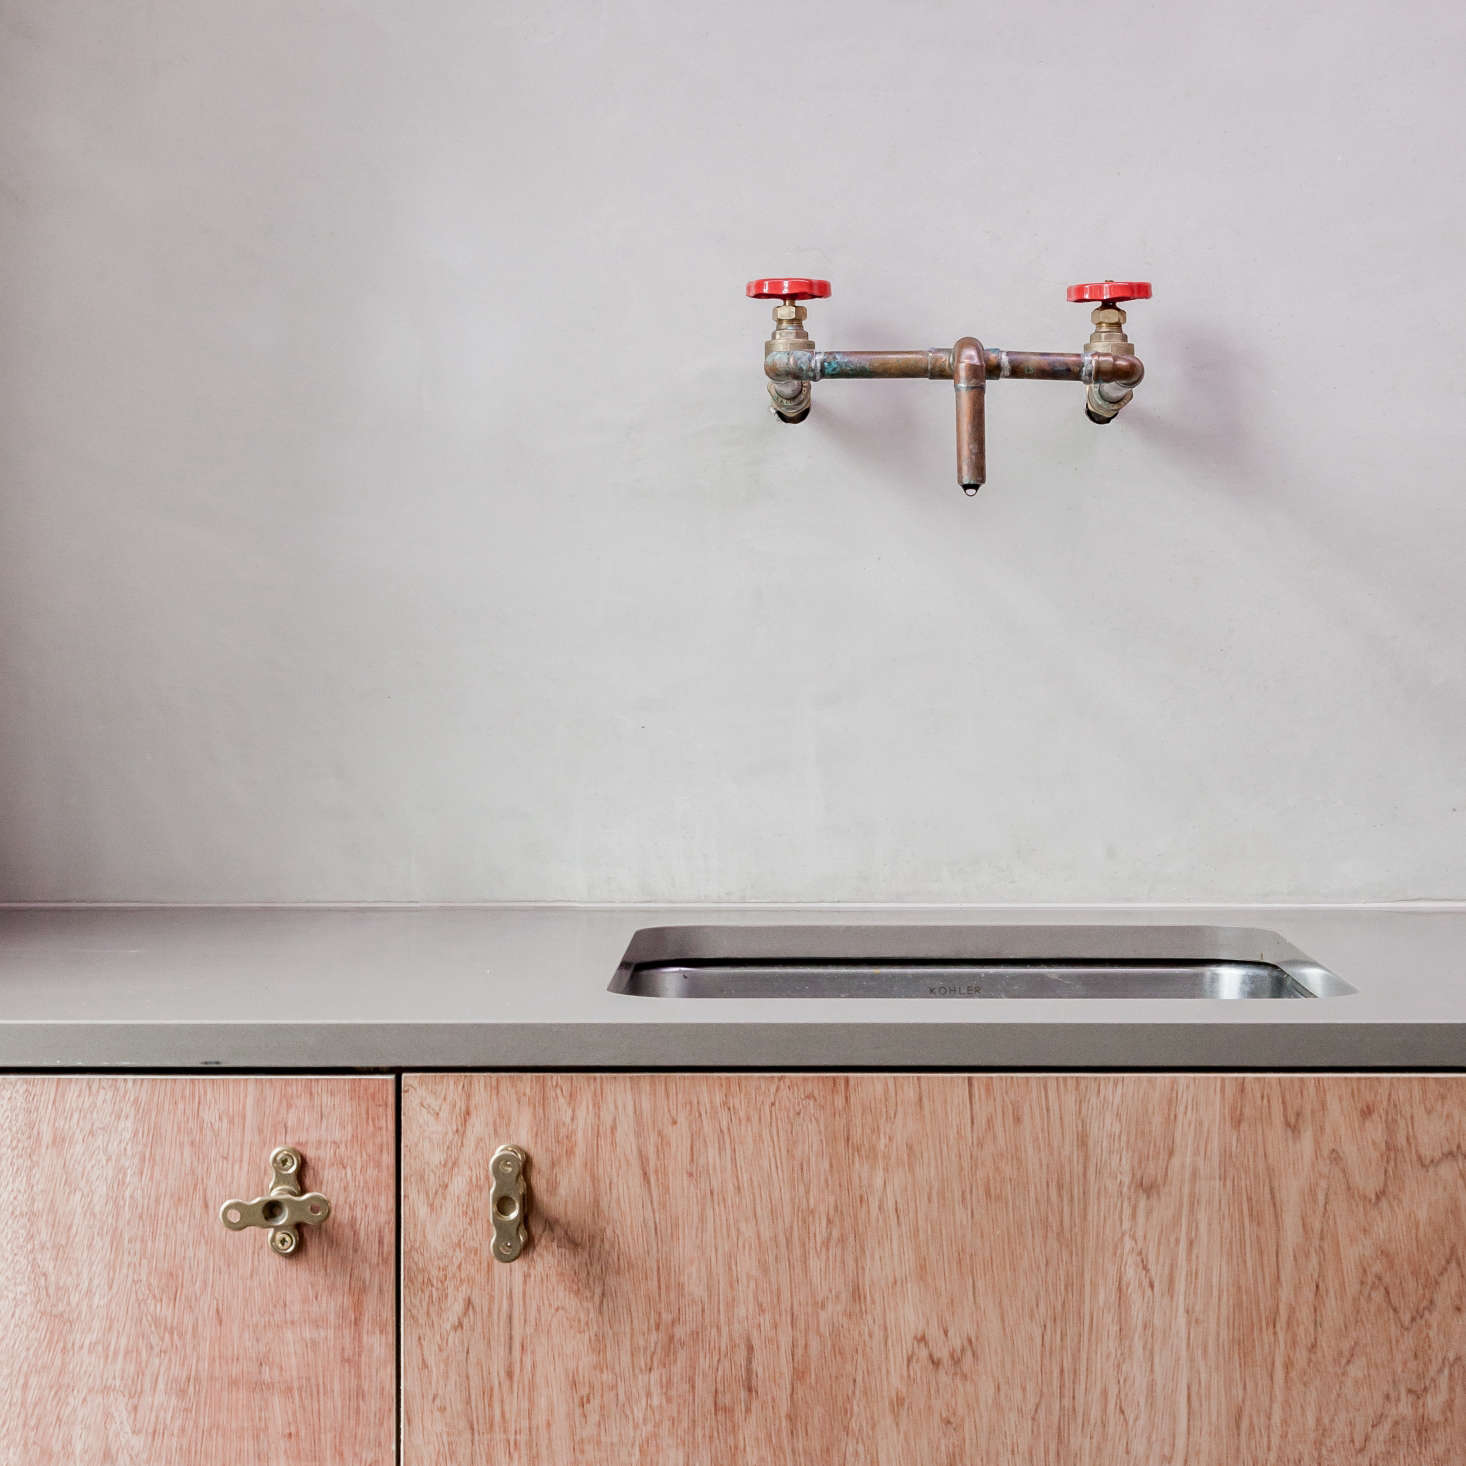 Brass kitchen faucet made from plumber's parts in a kitchen designed by architect Simon Astridge